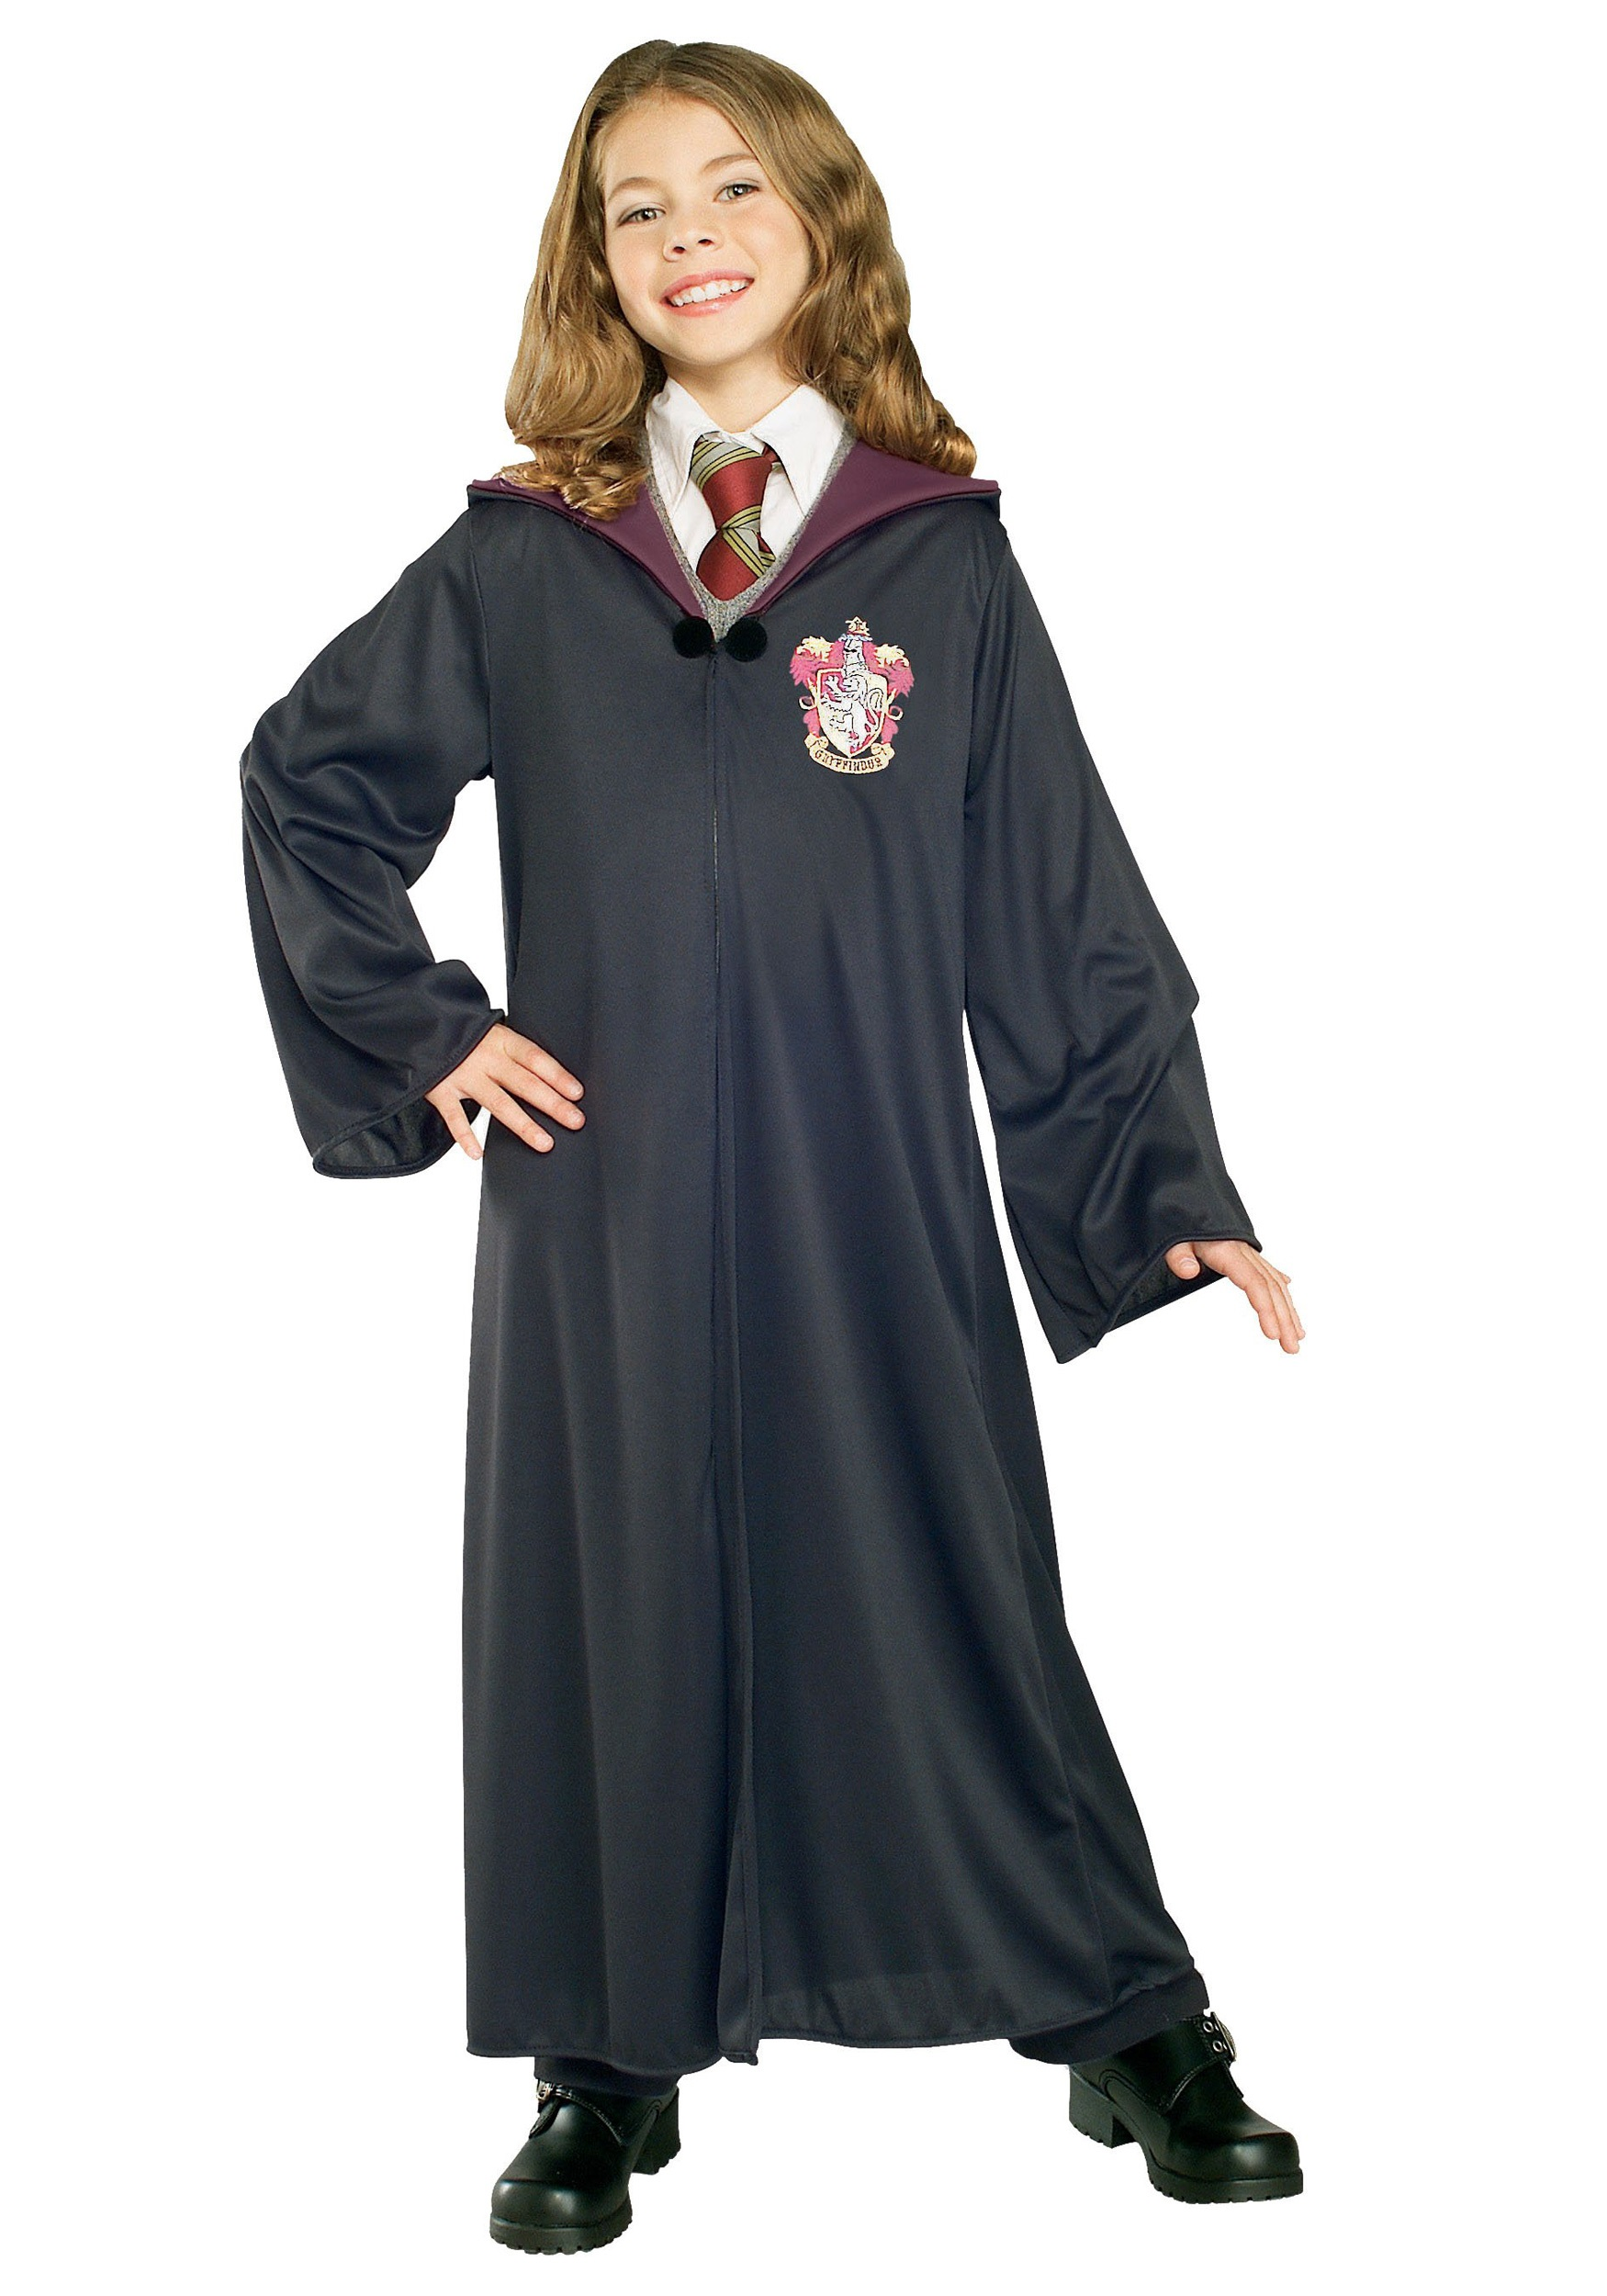 Child Hermione Granger Costume RU884253